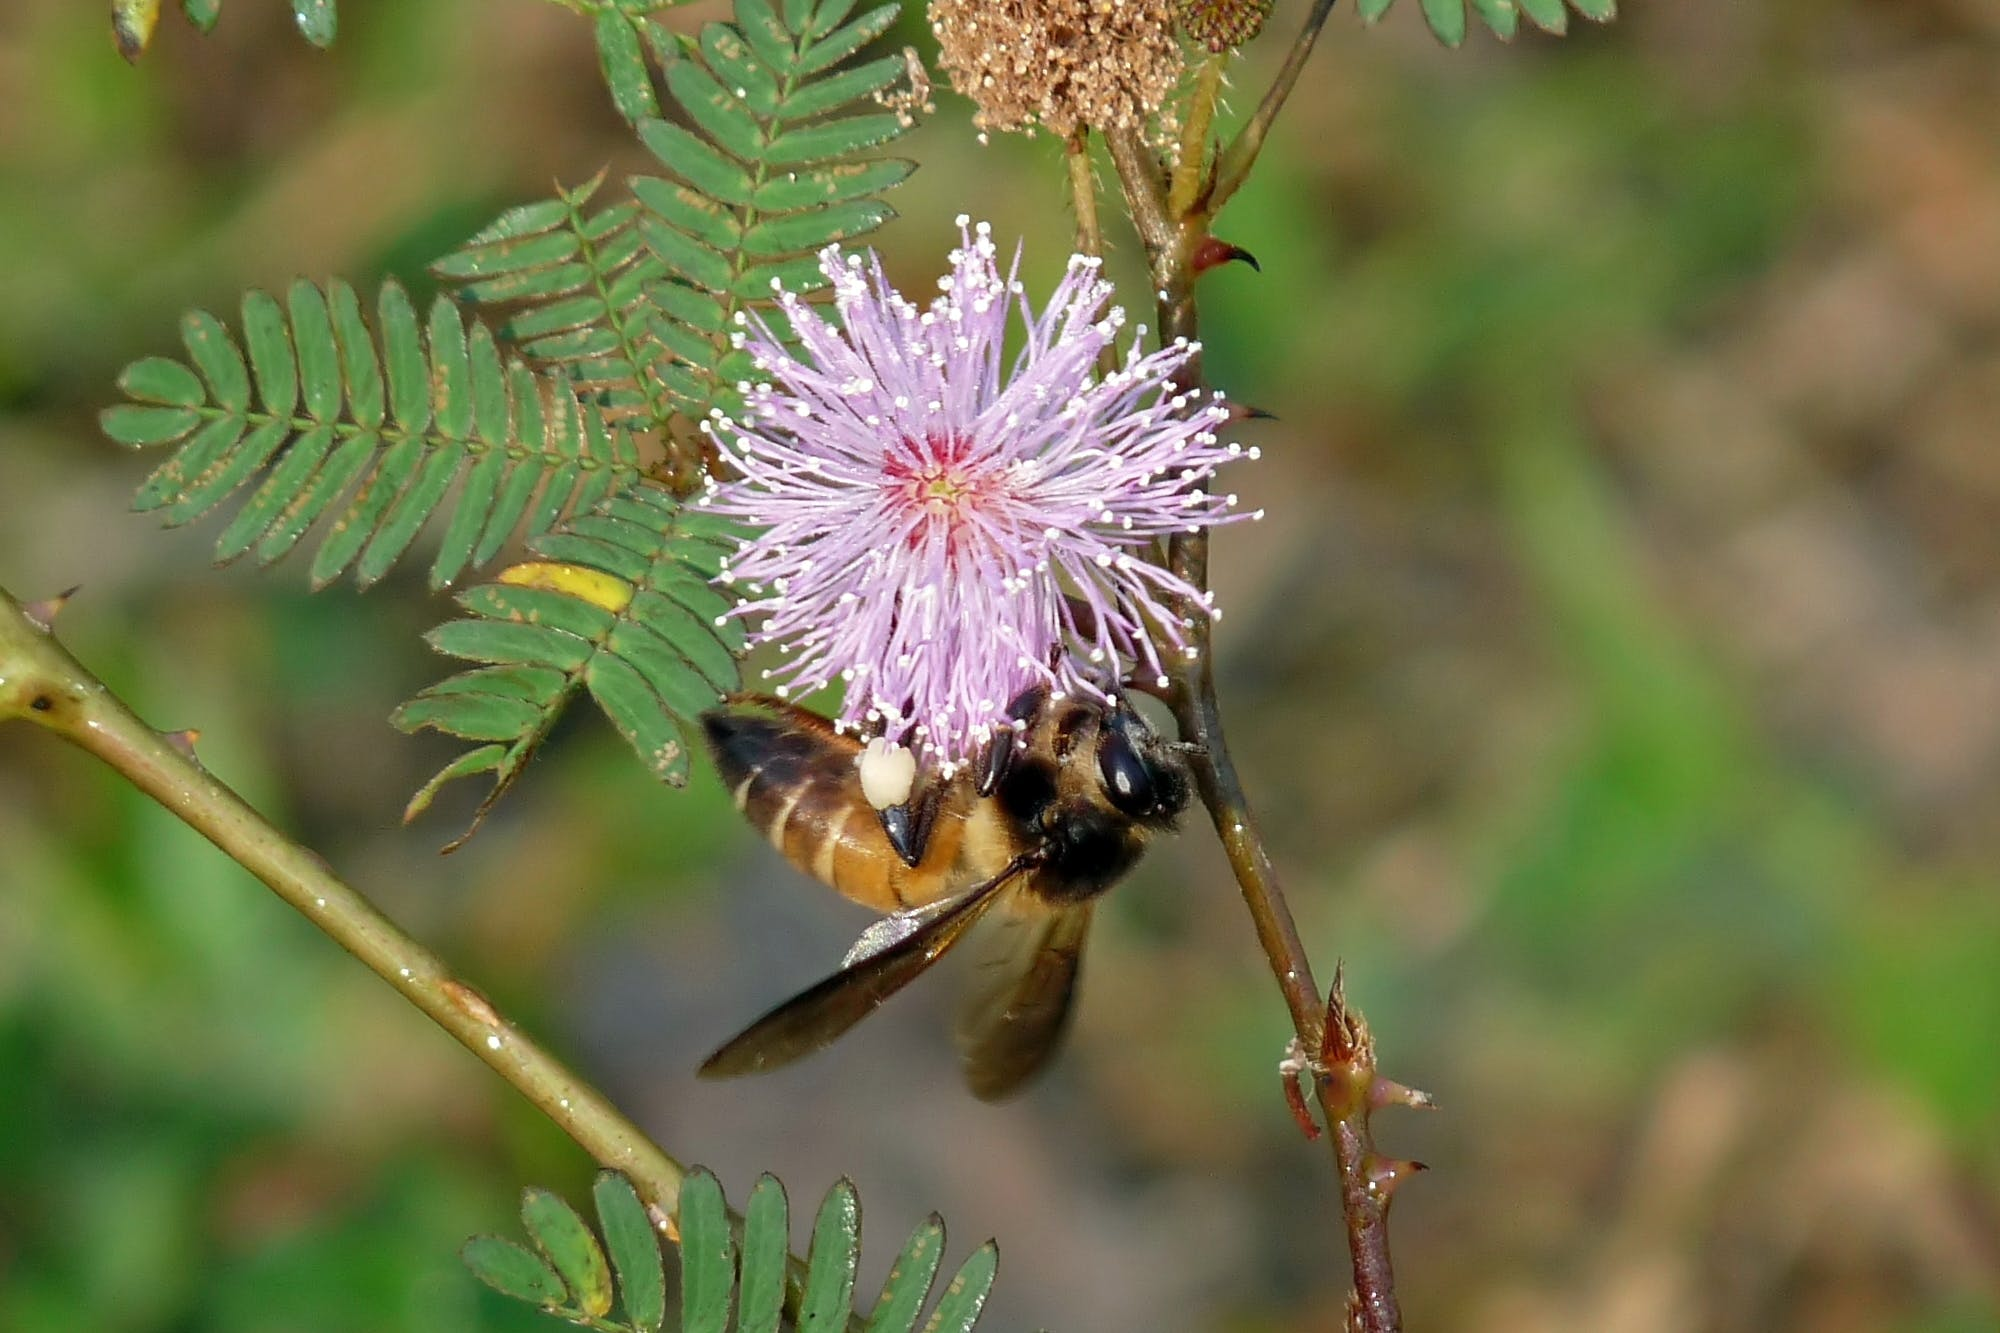 Nearly 90% of wild flowering plants depend on animal pollinators for seed production.